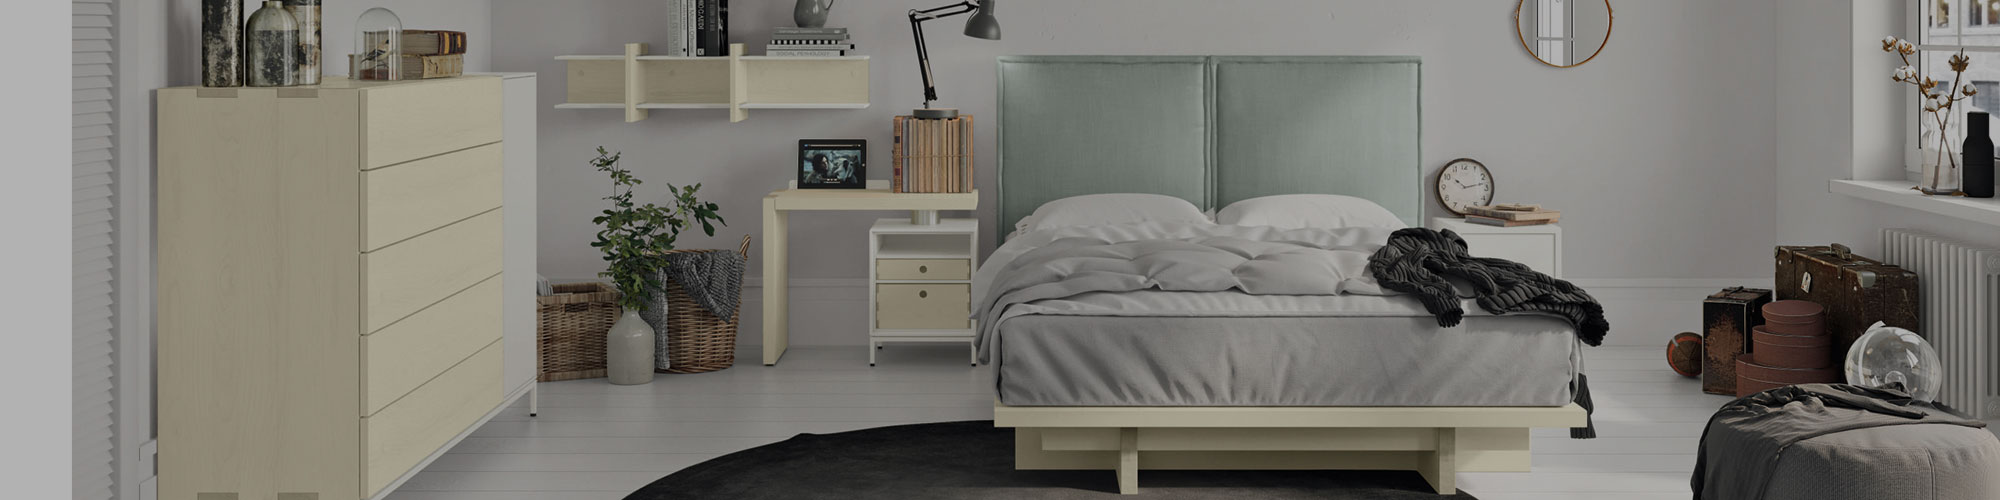 Advice On How To Buy A Bed by FCI London